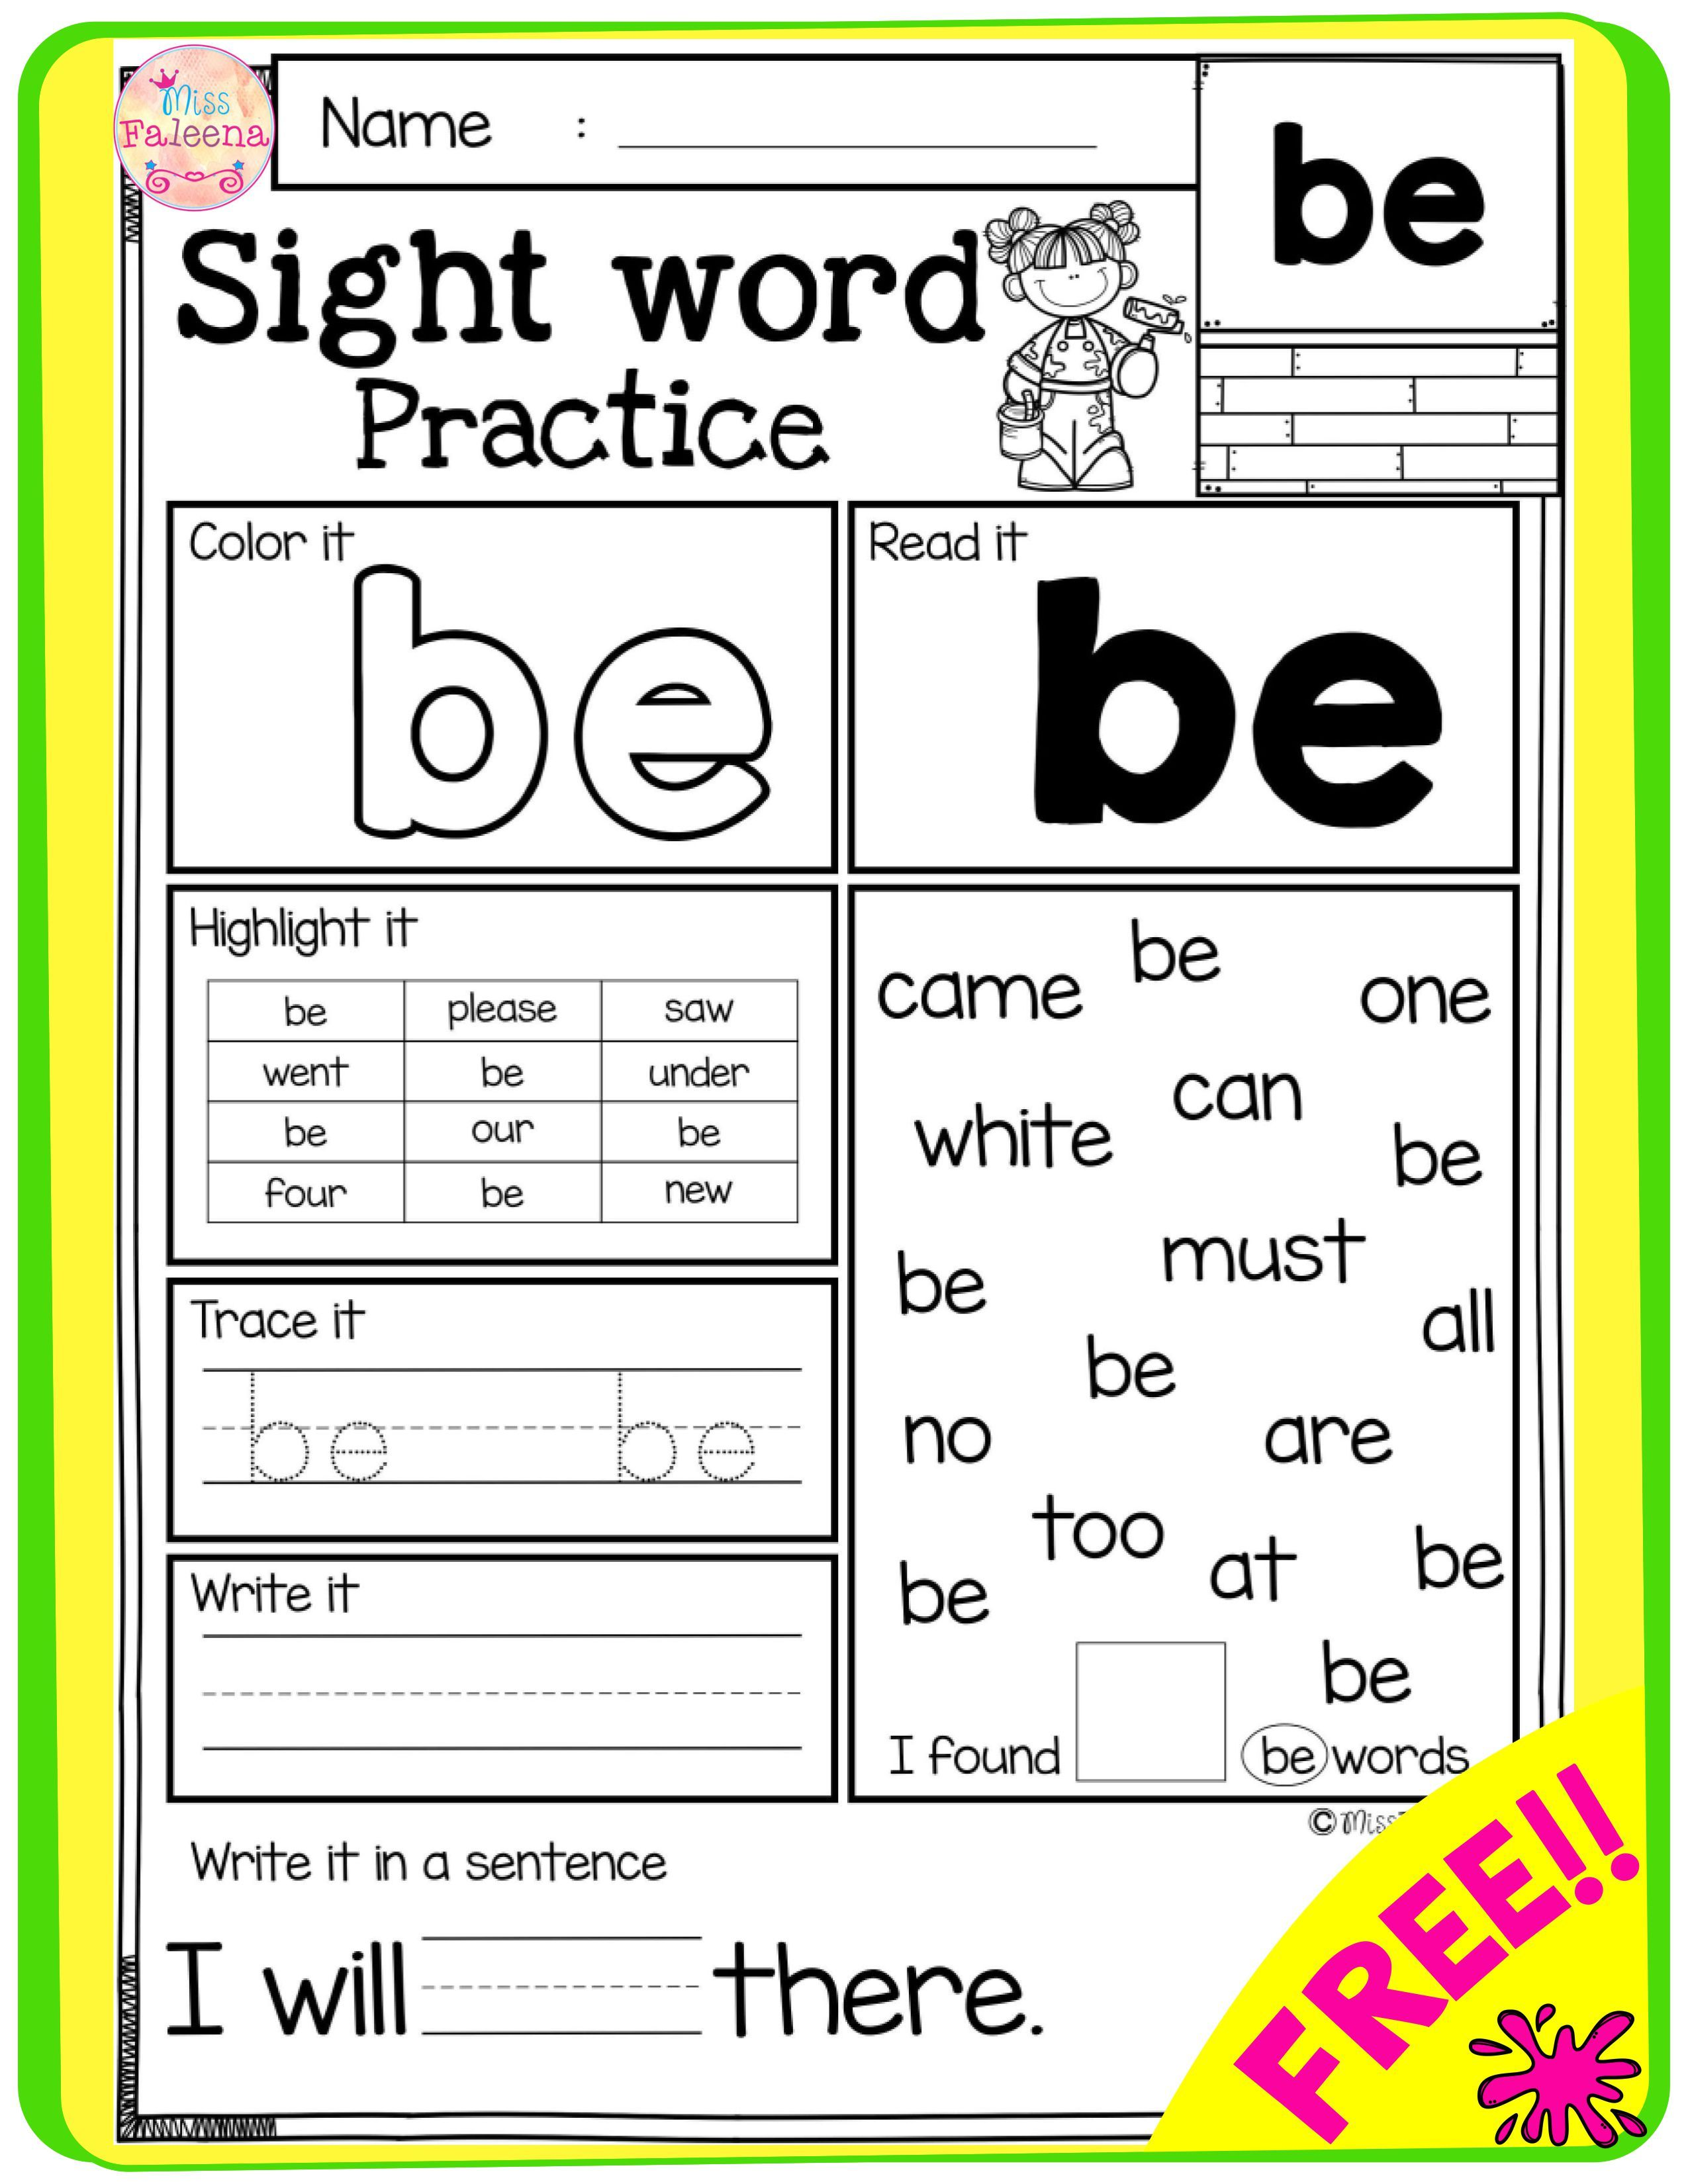 Free Sight Word Practice Sight Word Practice Word Practice Sight Words